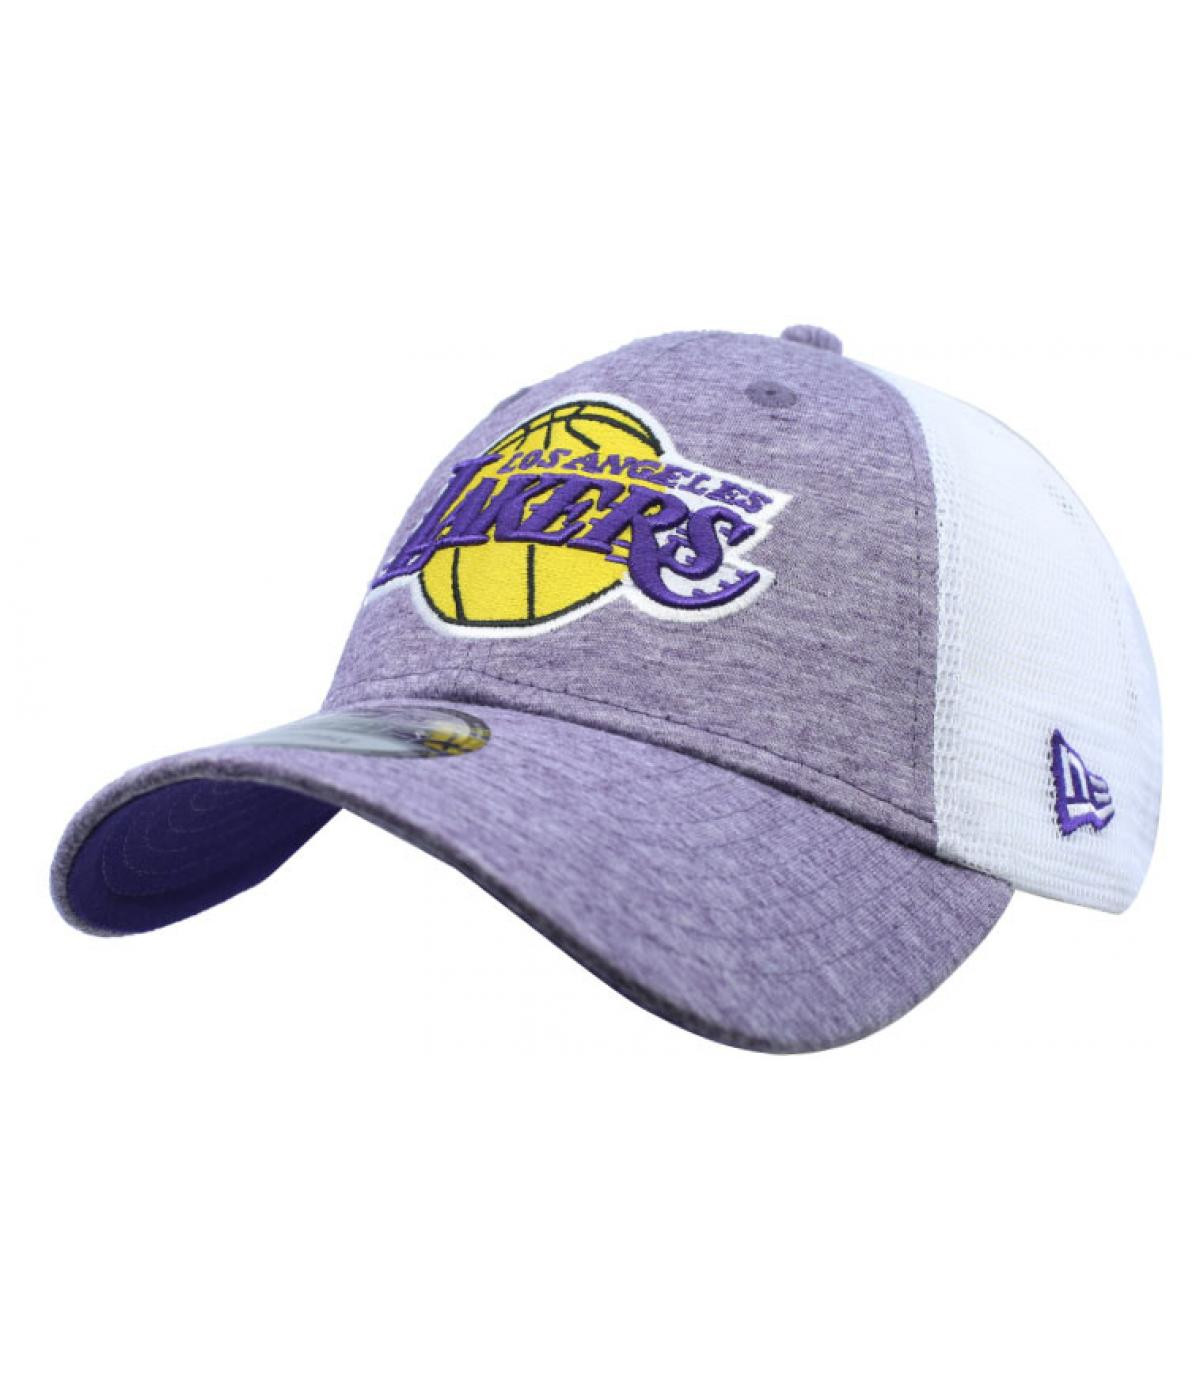 check out 83939 6296a ... Détails Trucker 9Forty Summer League Lakers - image ...